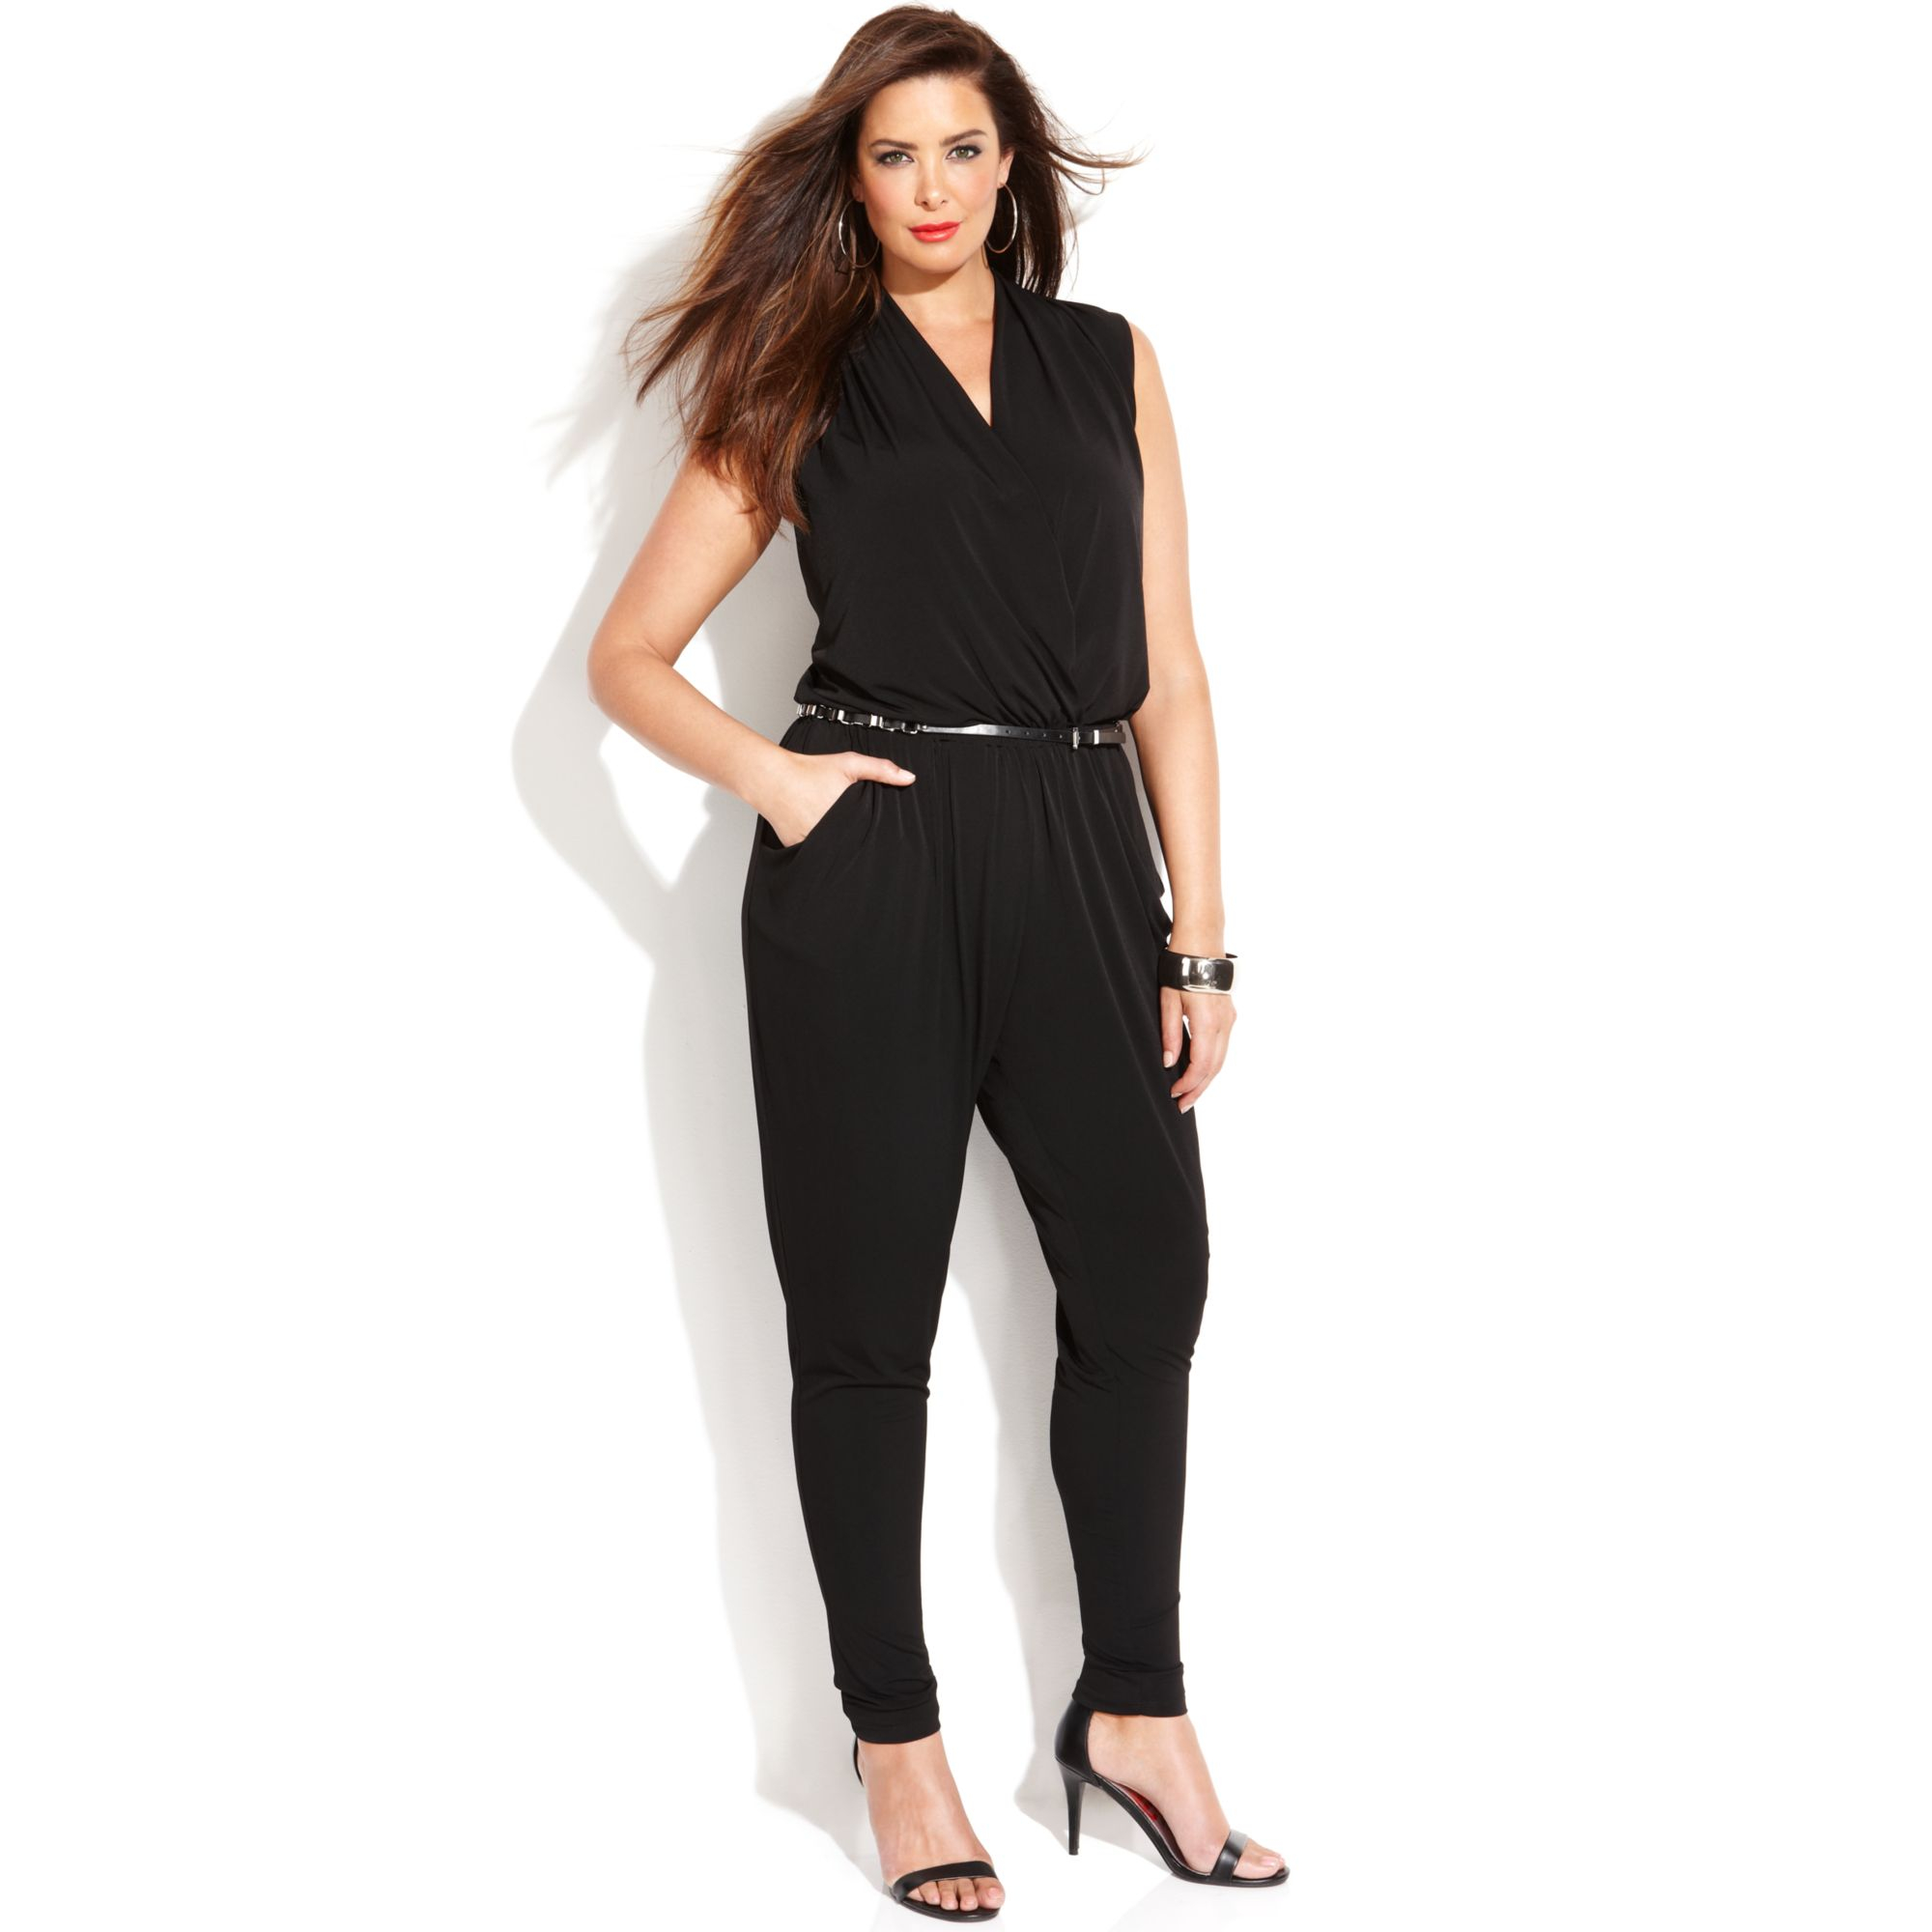 Shop for women's jumpsuits online at dirtyinstalzonevx6.ga Find the latest fashion jumpsuits, sexy rompers and bodysuits. High quality with affordable prices. 10% off 1st order.